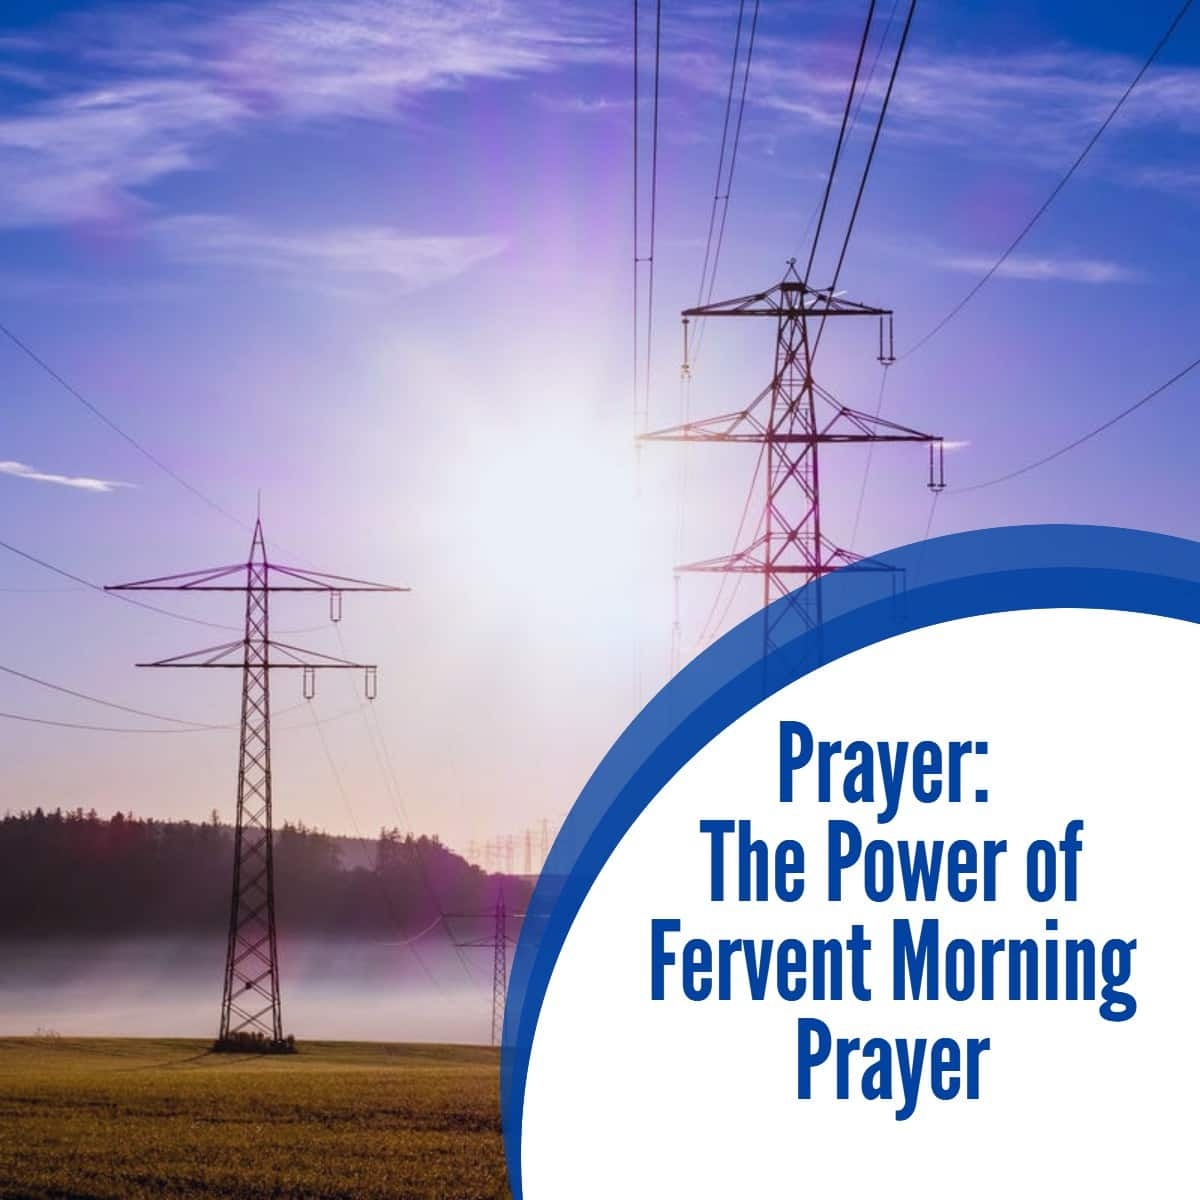 Prayer The Power of Fervent Morning Prayer 1